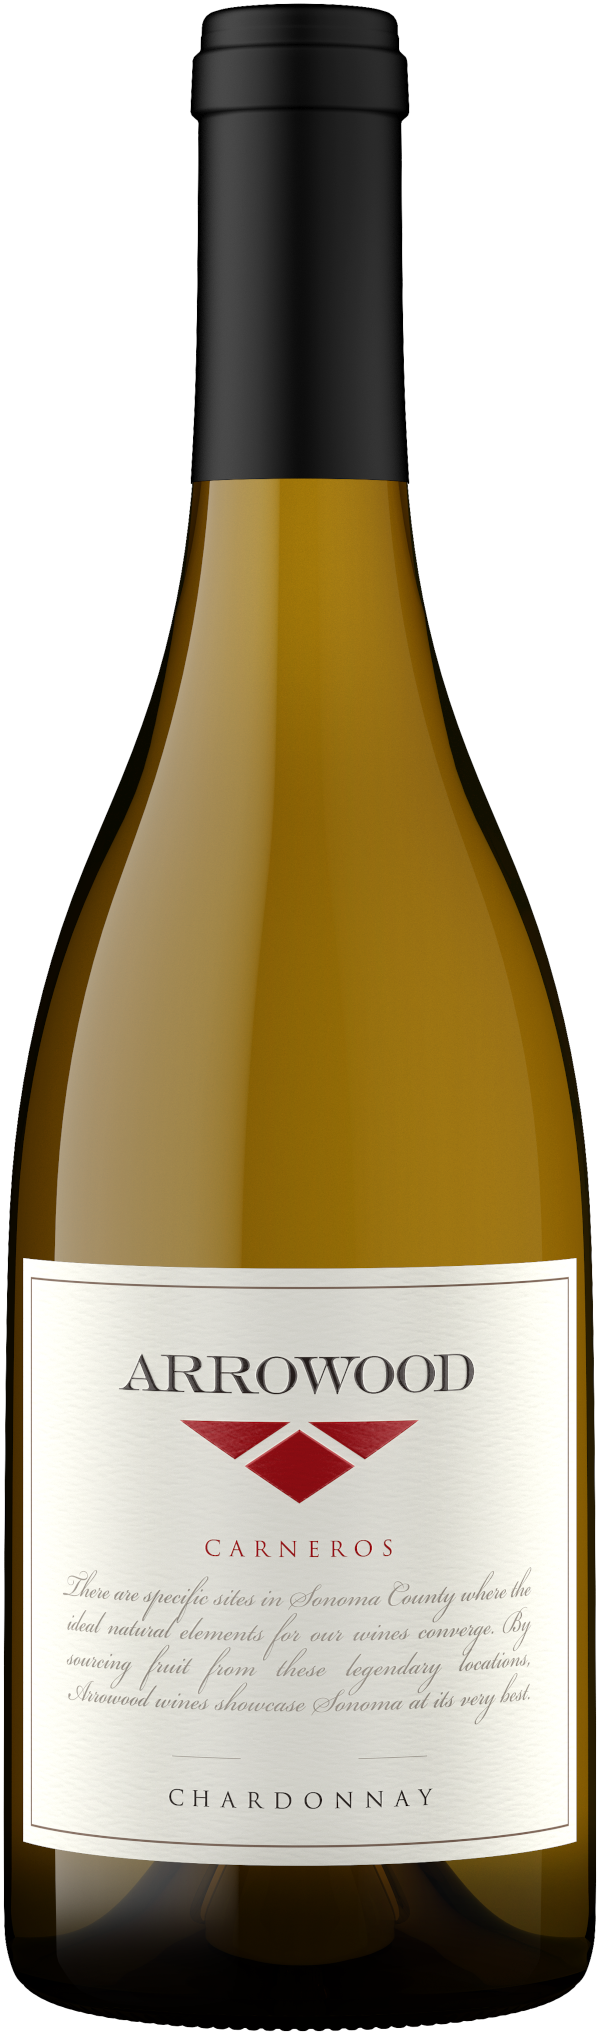 AWD_NV_Carneros_Chard_Outshinery.png